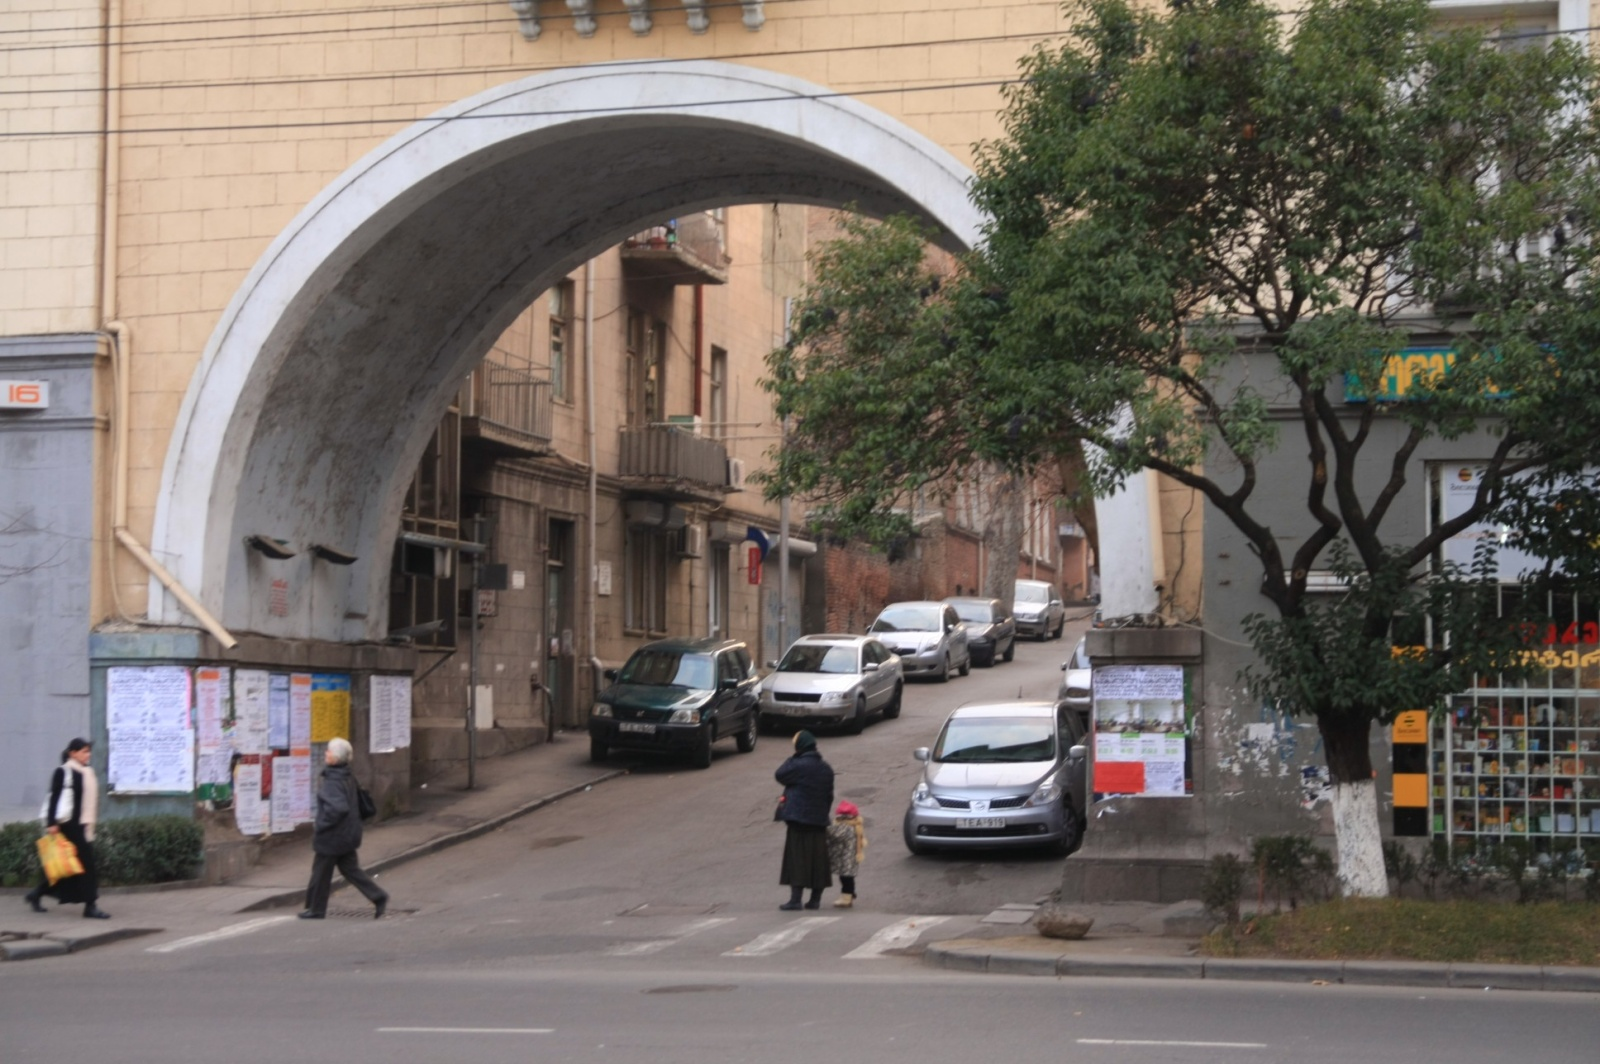 Fancy arches are quite common